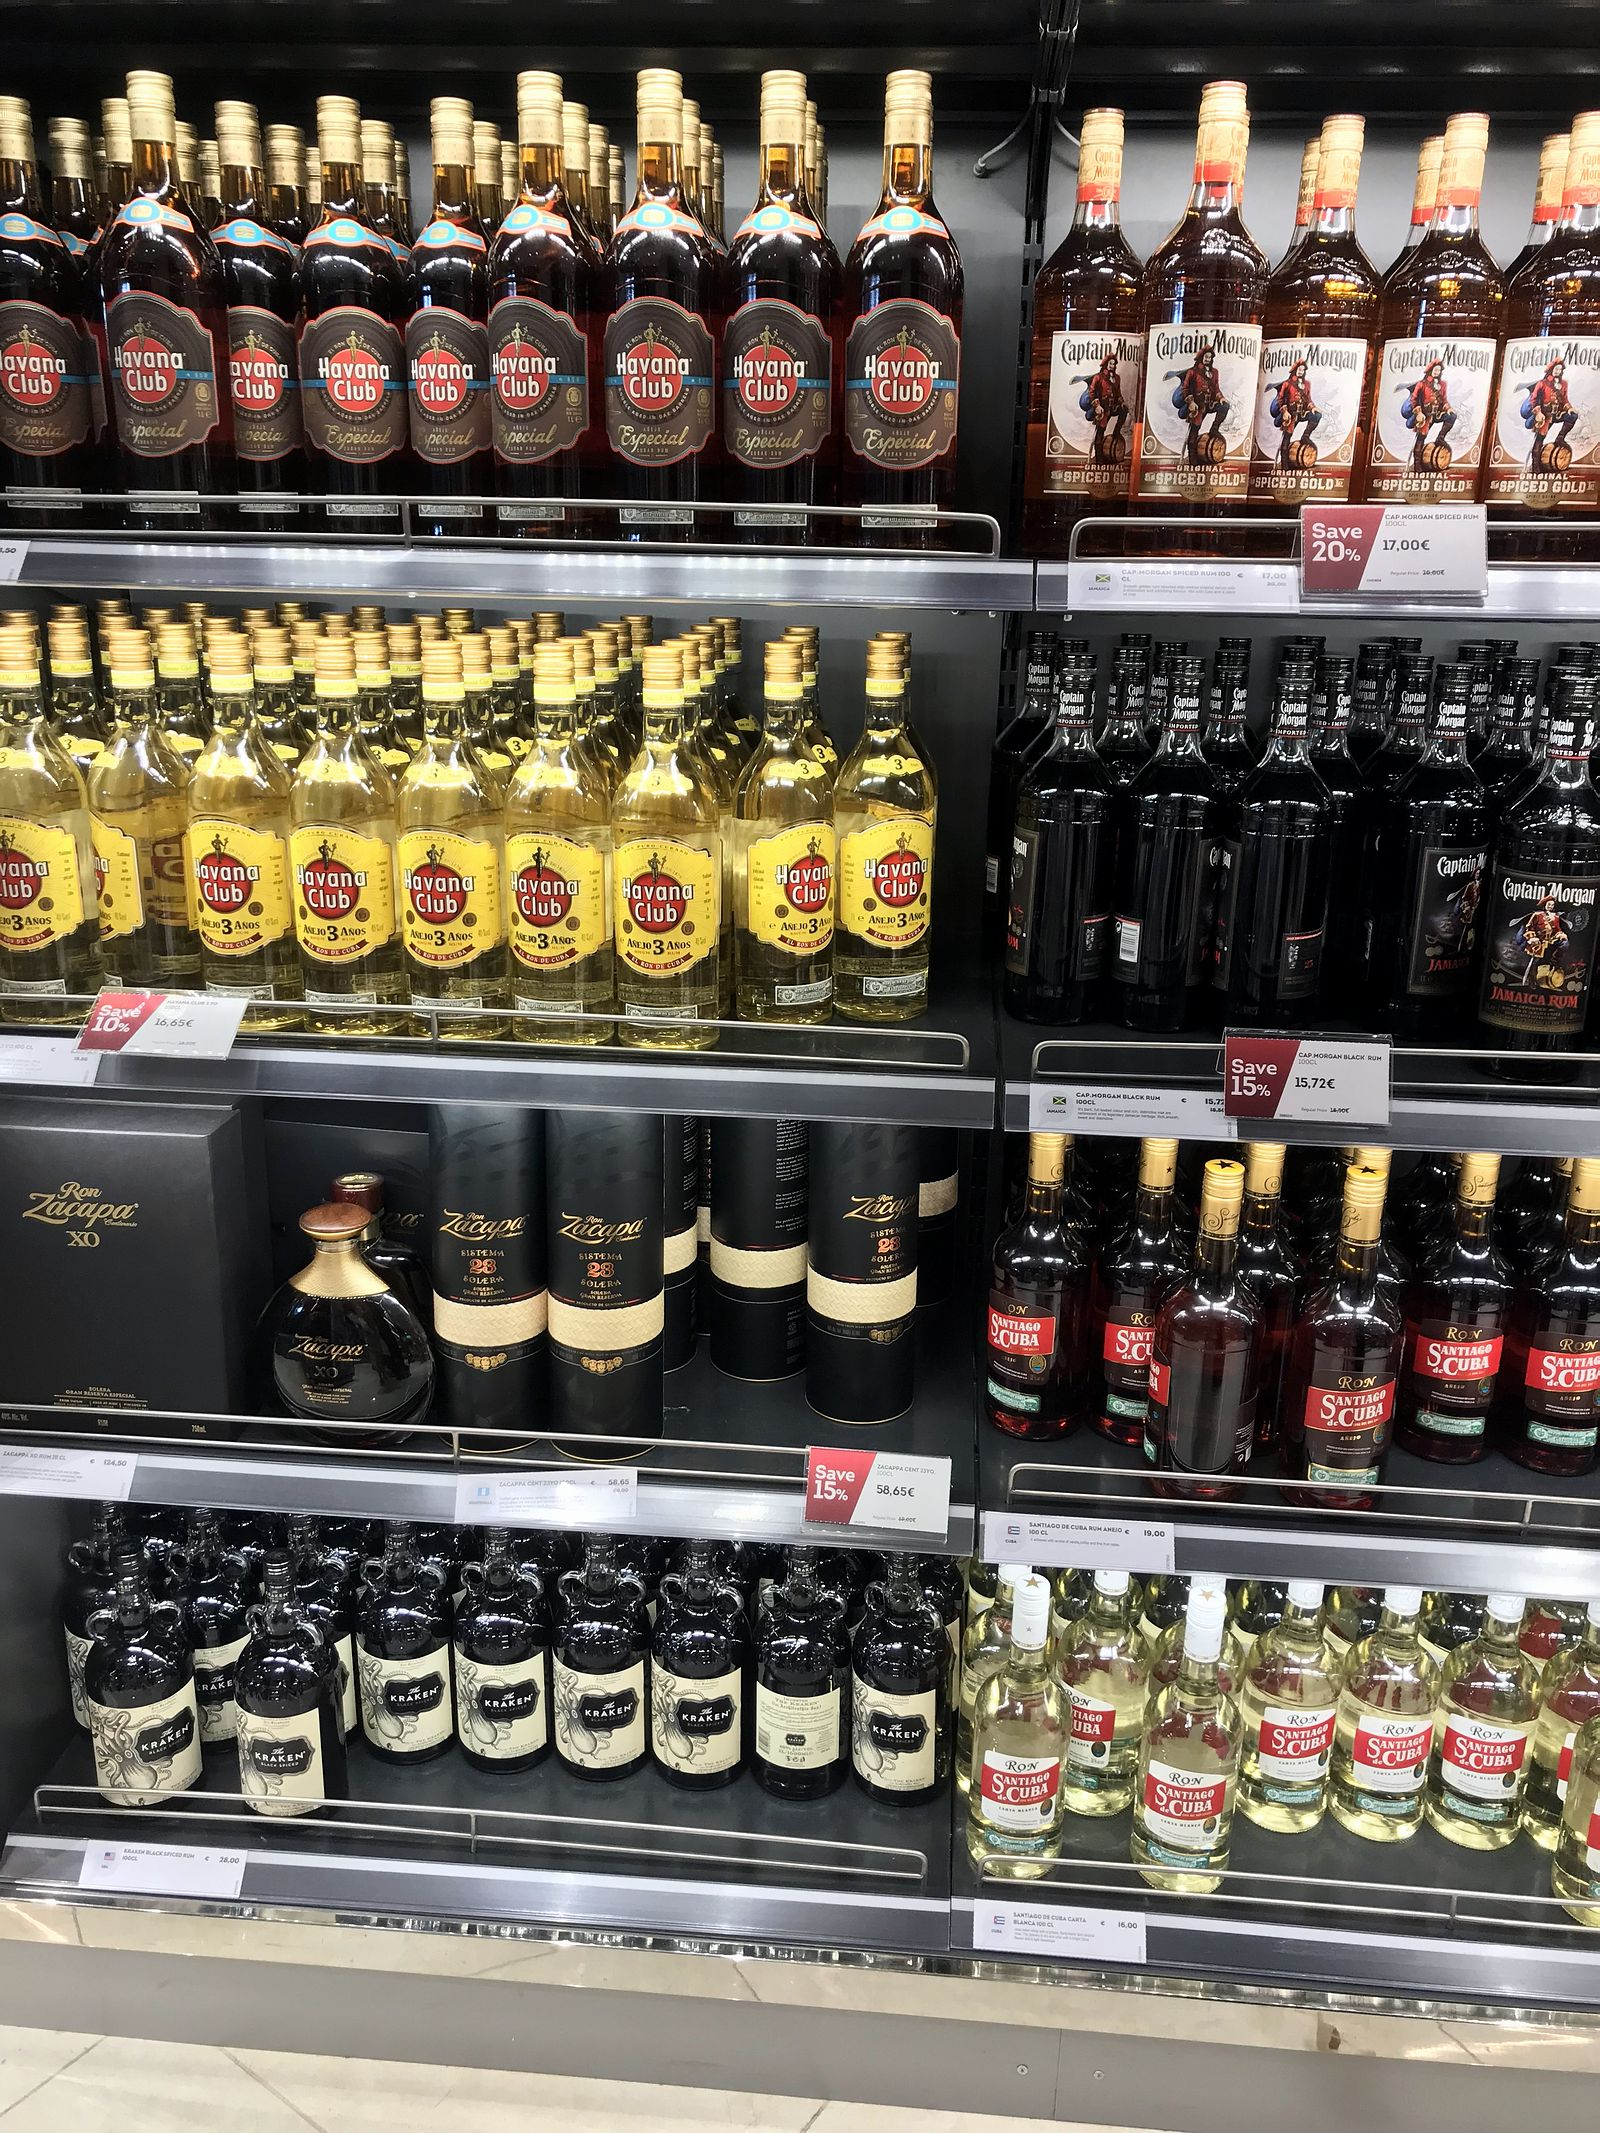 Duty free Antalya, august 2019, rum Havana Club, Captain Morgan, Santiago de Cuba